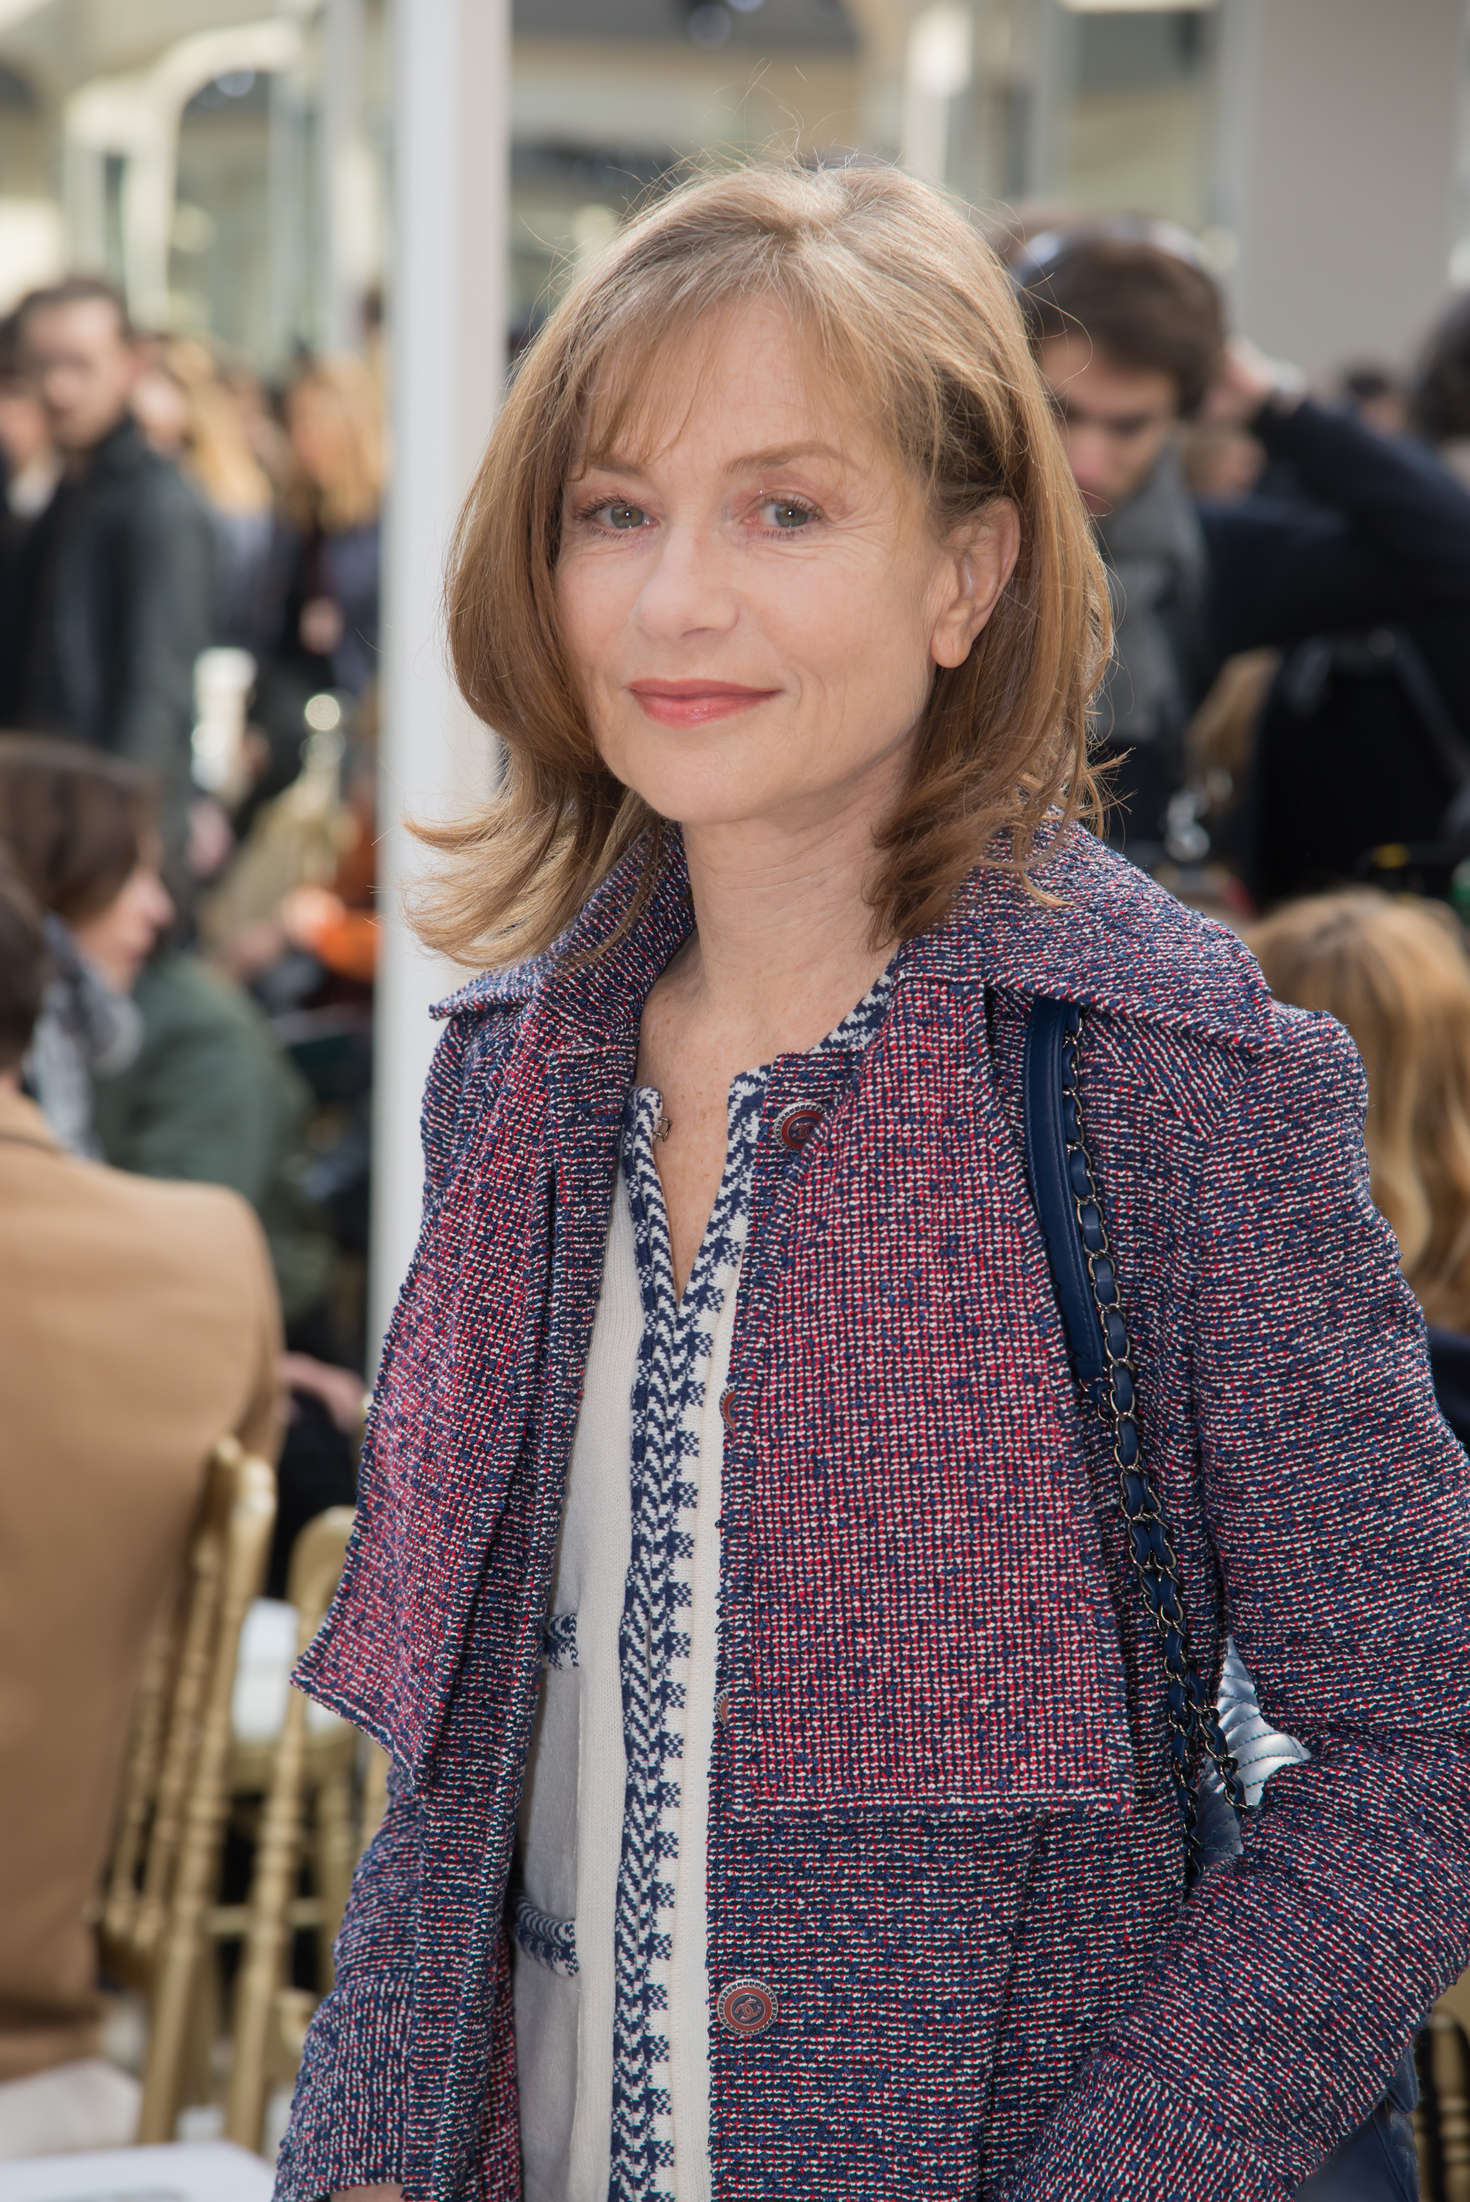 Isabelle Huppert Chanel Fashion Show in Paris